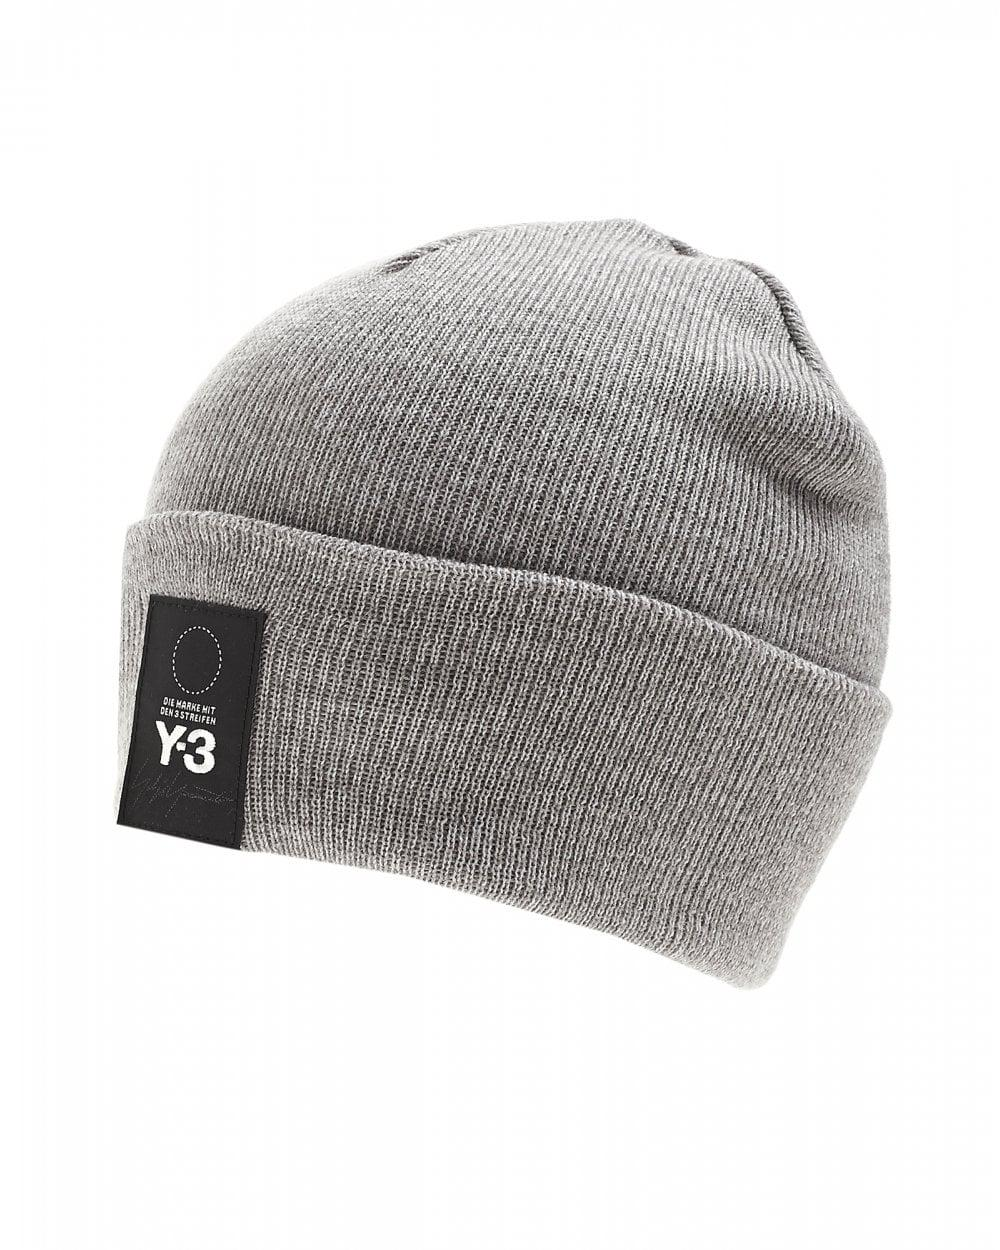 a24faedf4 Men's Patch Logo Beanie, Gray Ribbed Hat